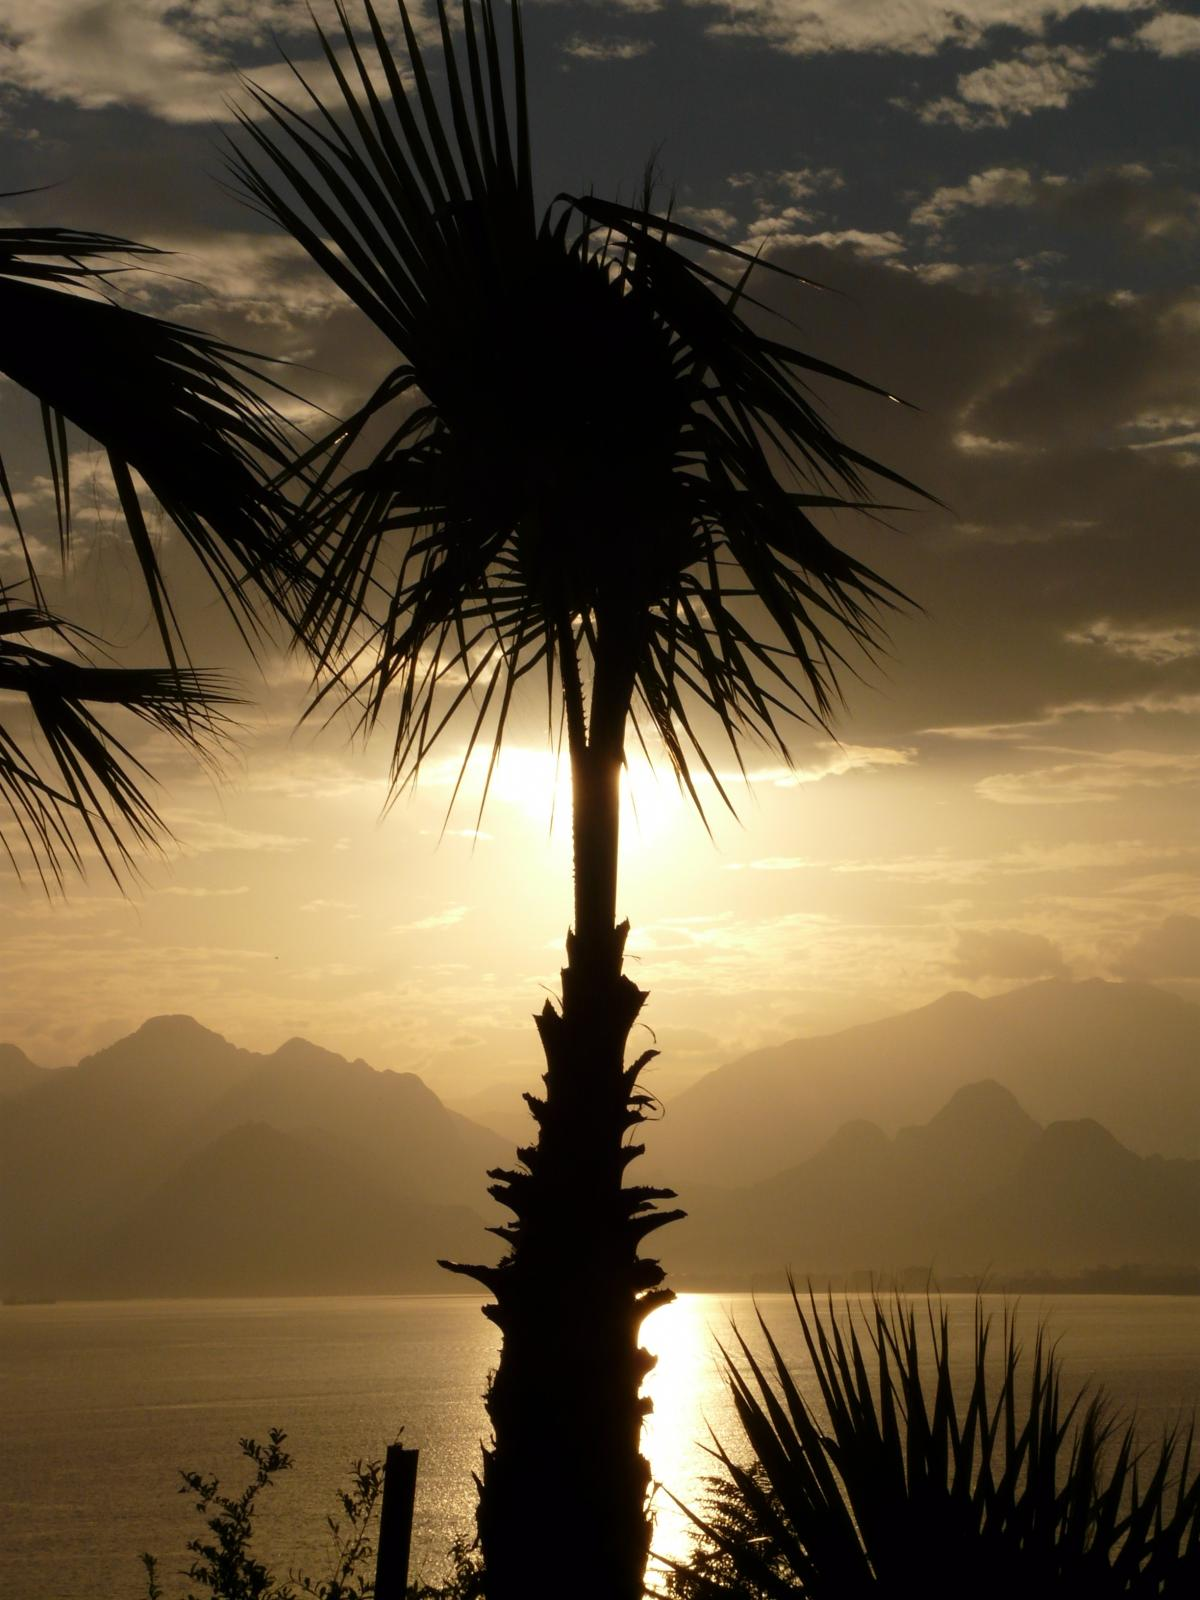 Silhouette Photo of Coconut Tree Beside the Body of Water #49224